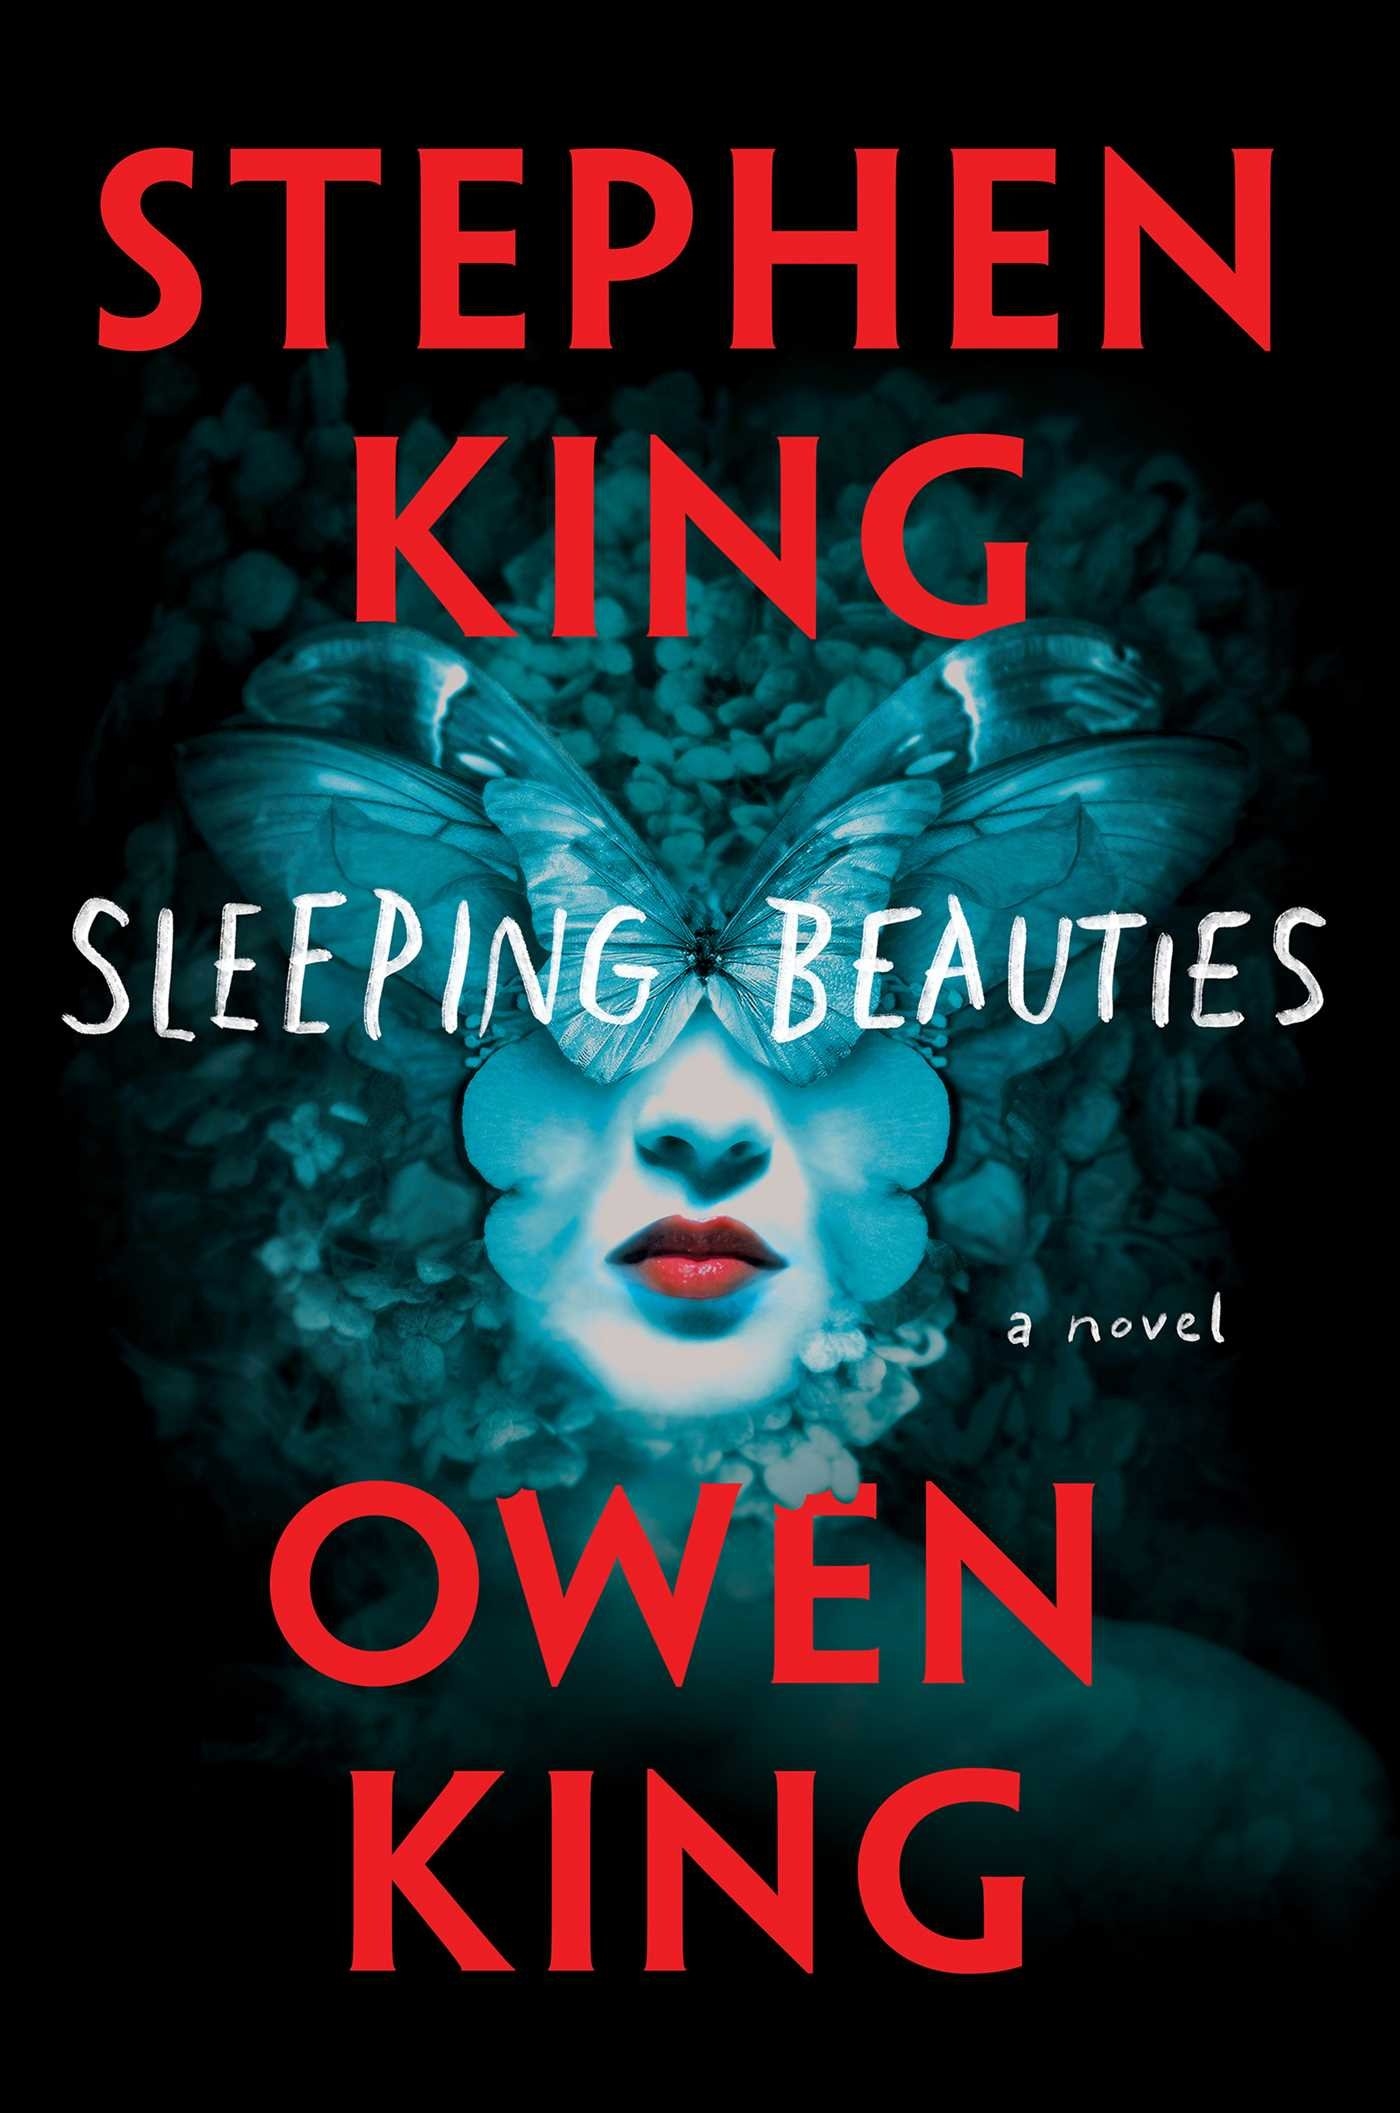 [sleeping beauties stephenking owenking couverturejpg]